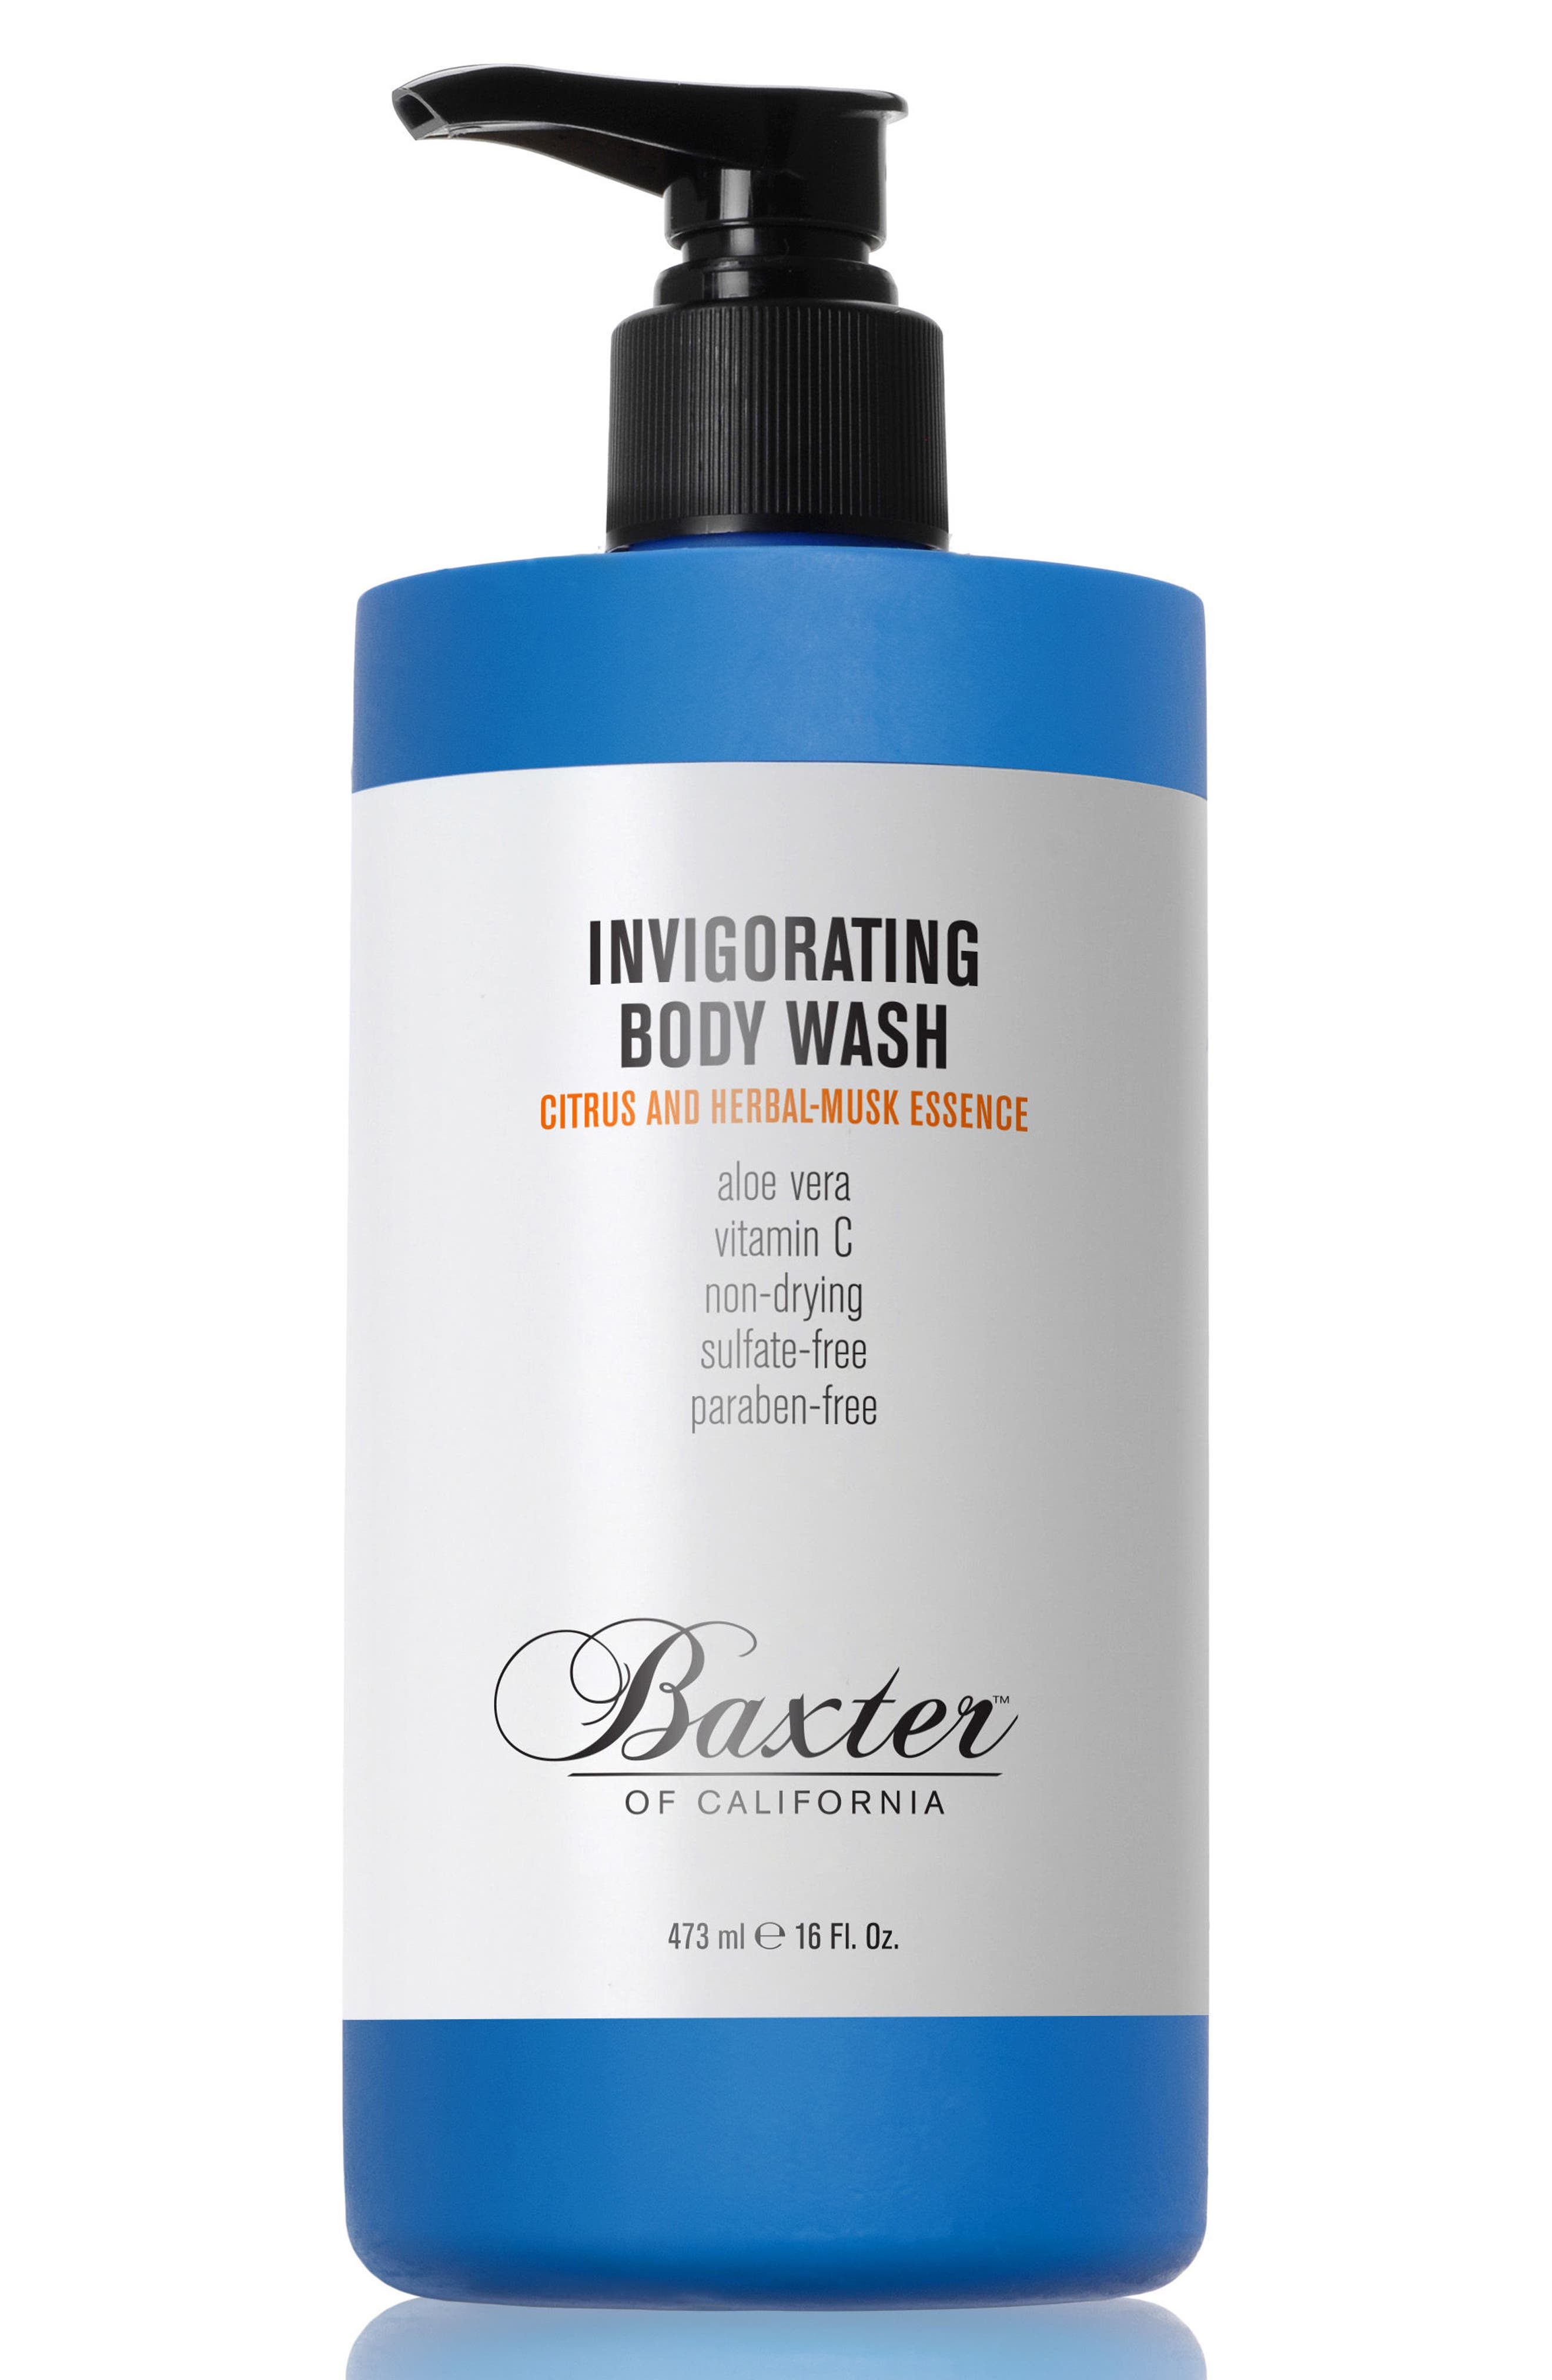 Baxter of California Citrus and Herbal Musk Invigorating Body Wash